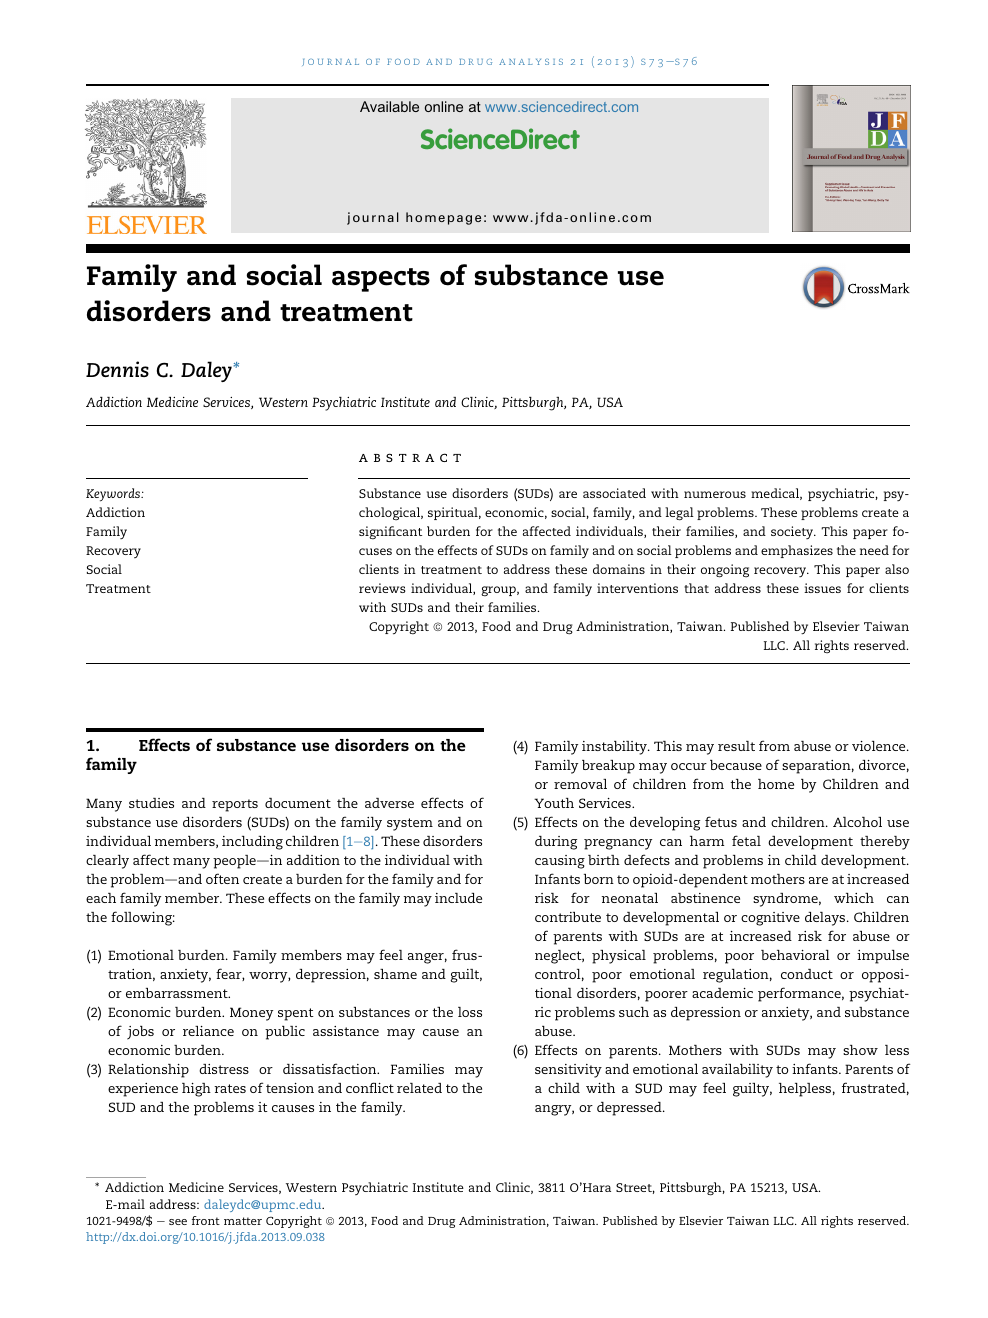 Family and social aspects of substance use disorders and